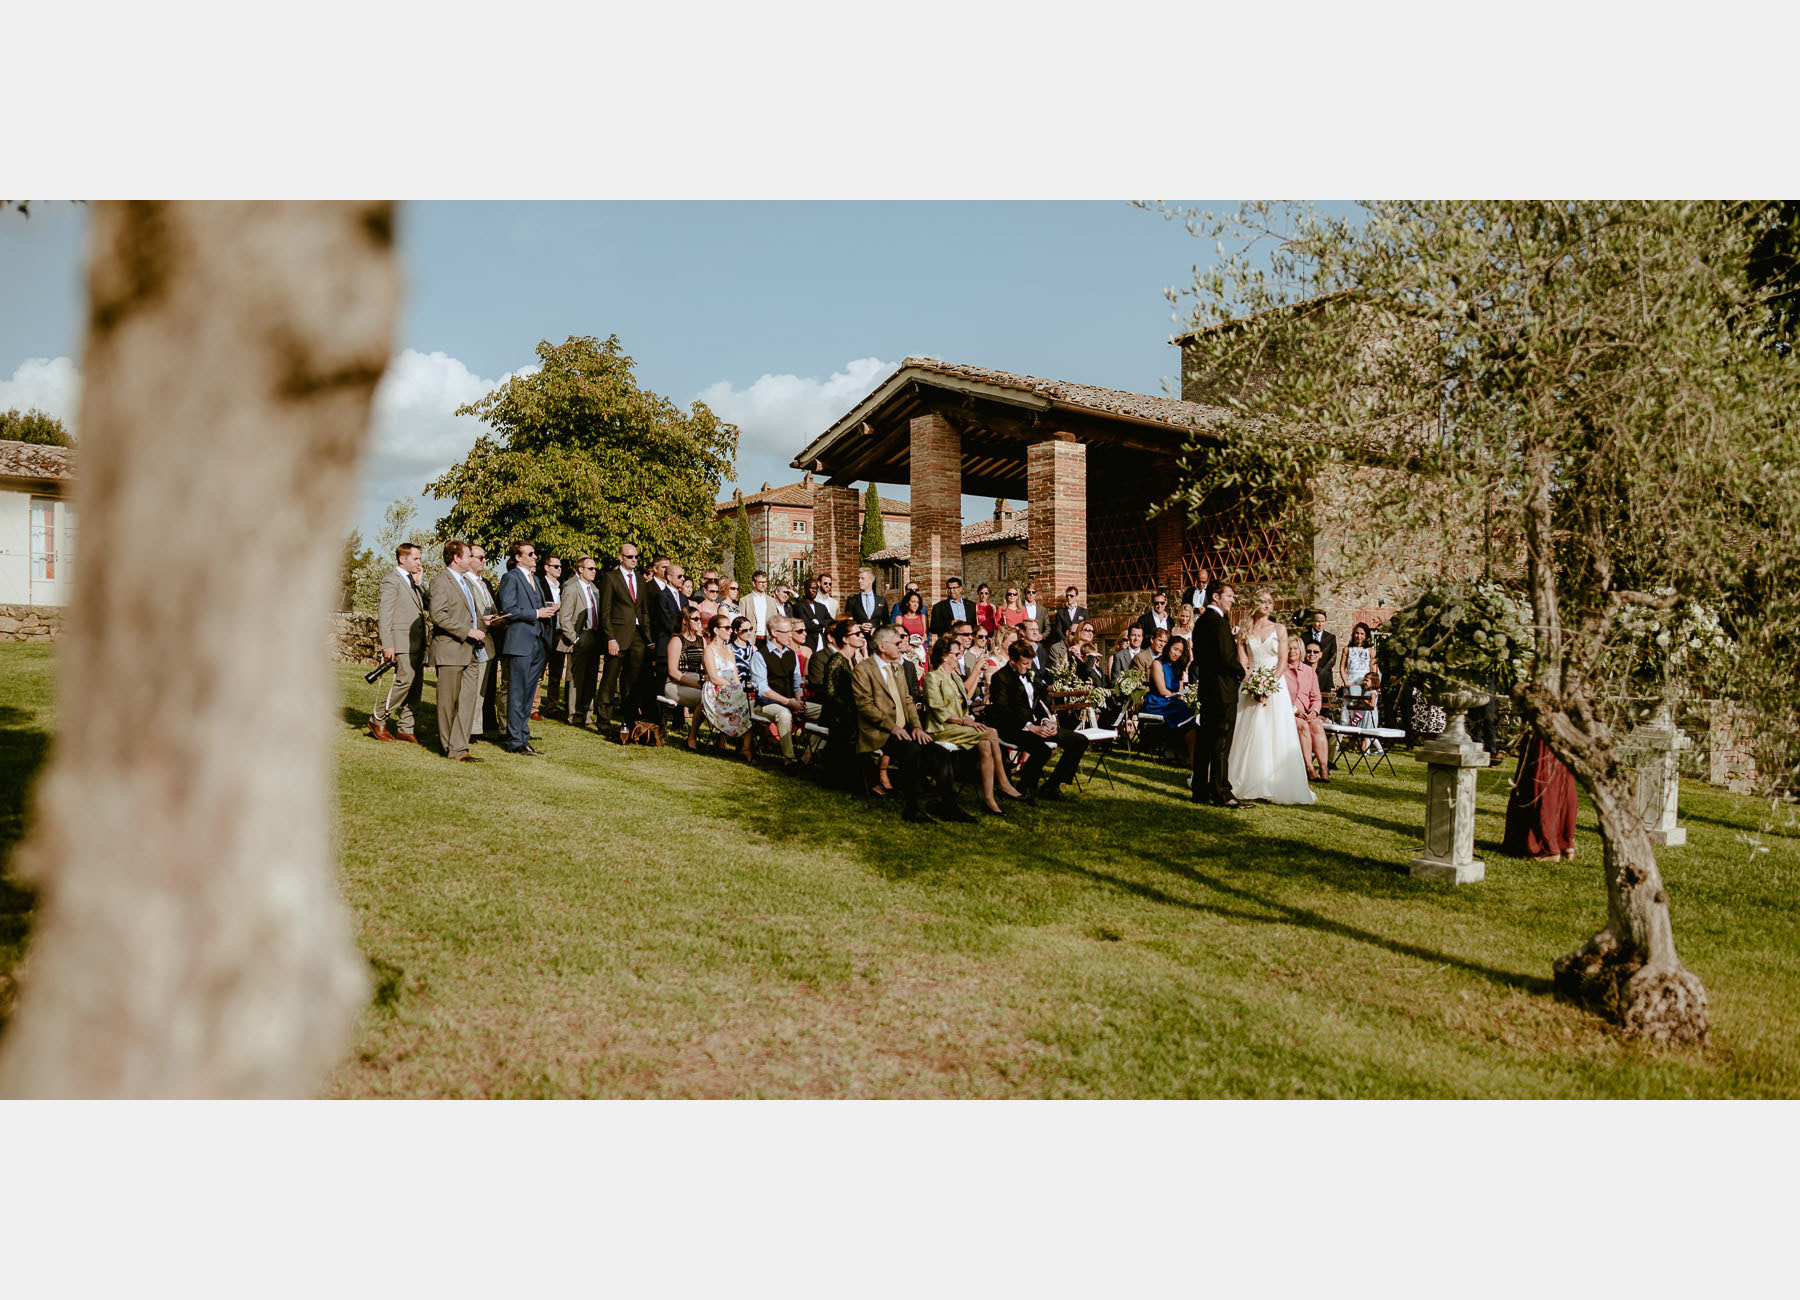 Siena wedding photographer borgo scopeto outdoor timeless ceremo